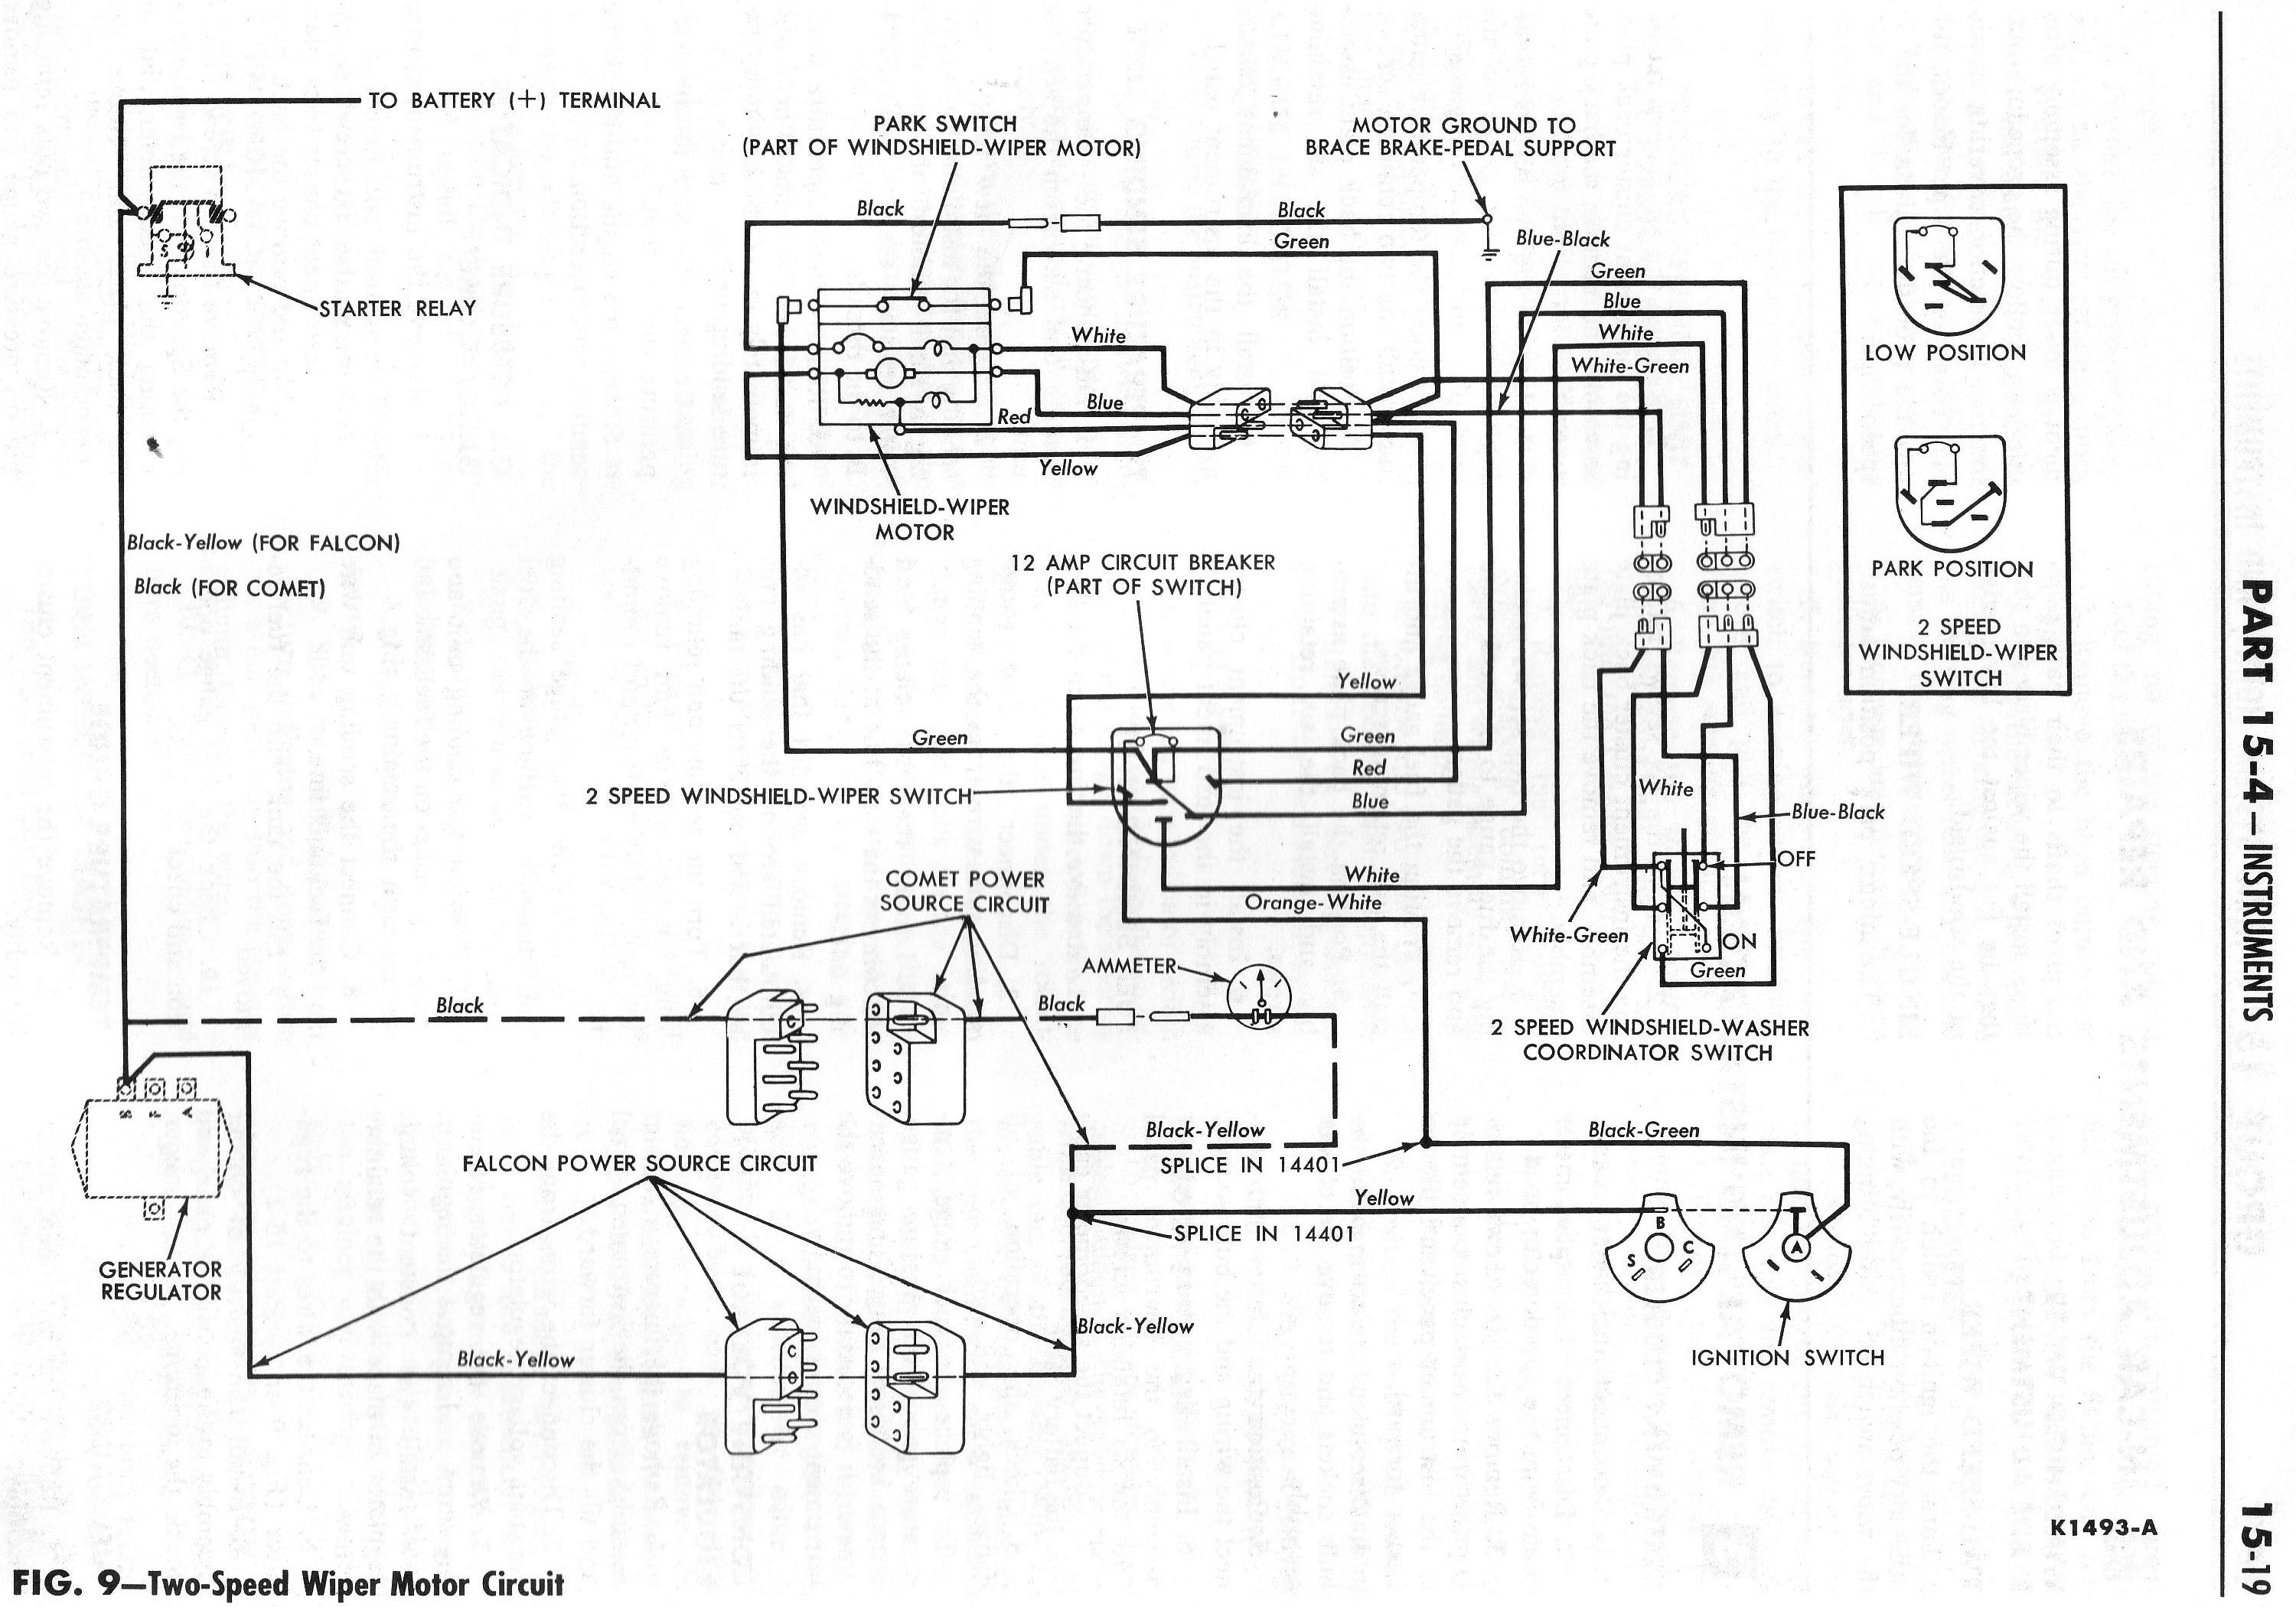 1970 Chevelle Windshield Wiper Motor Wiring Diagram - Wiring Diagram - Wiper Motor Wiring Diagram Chevrolet